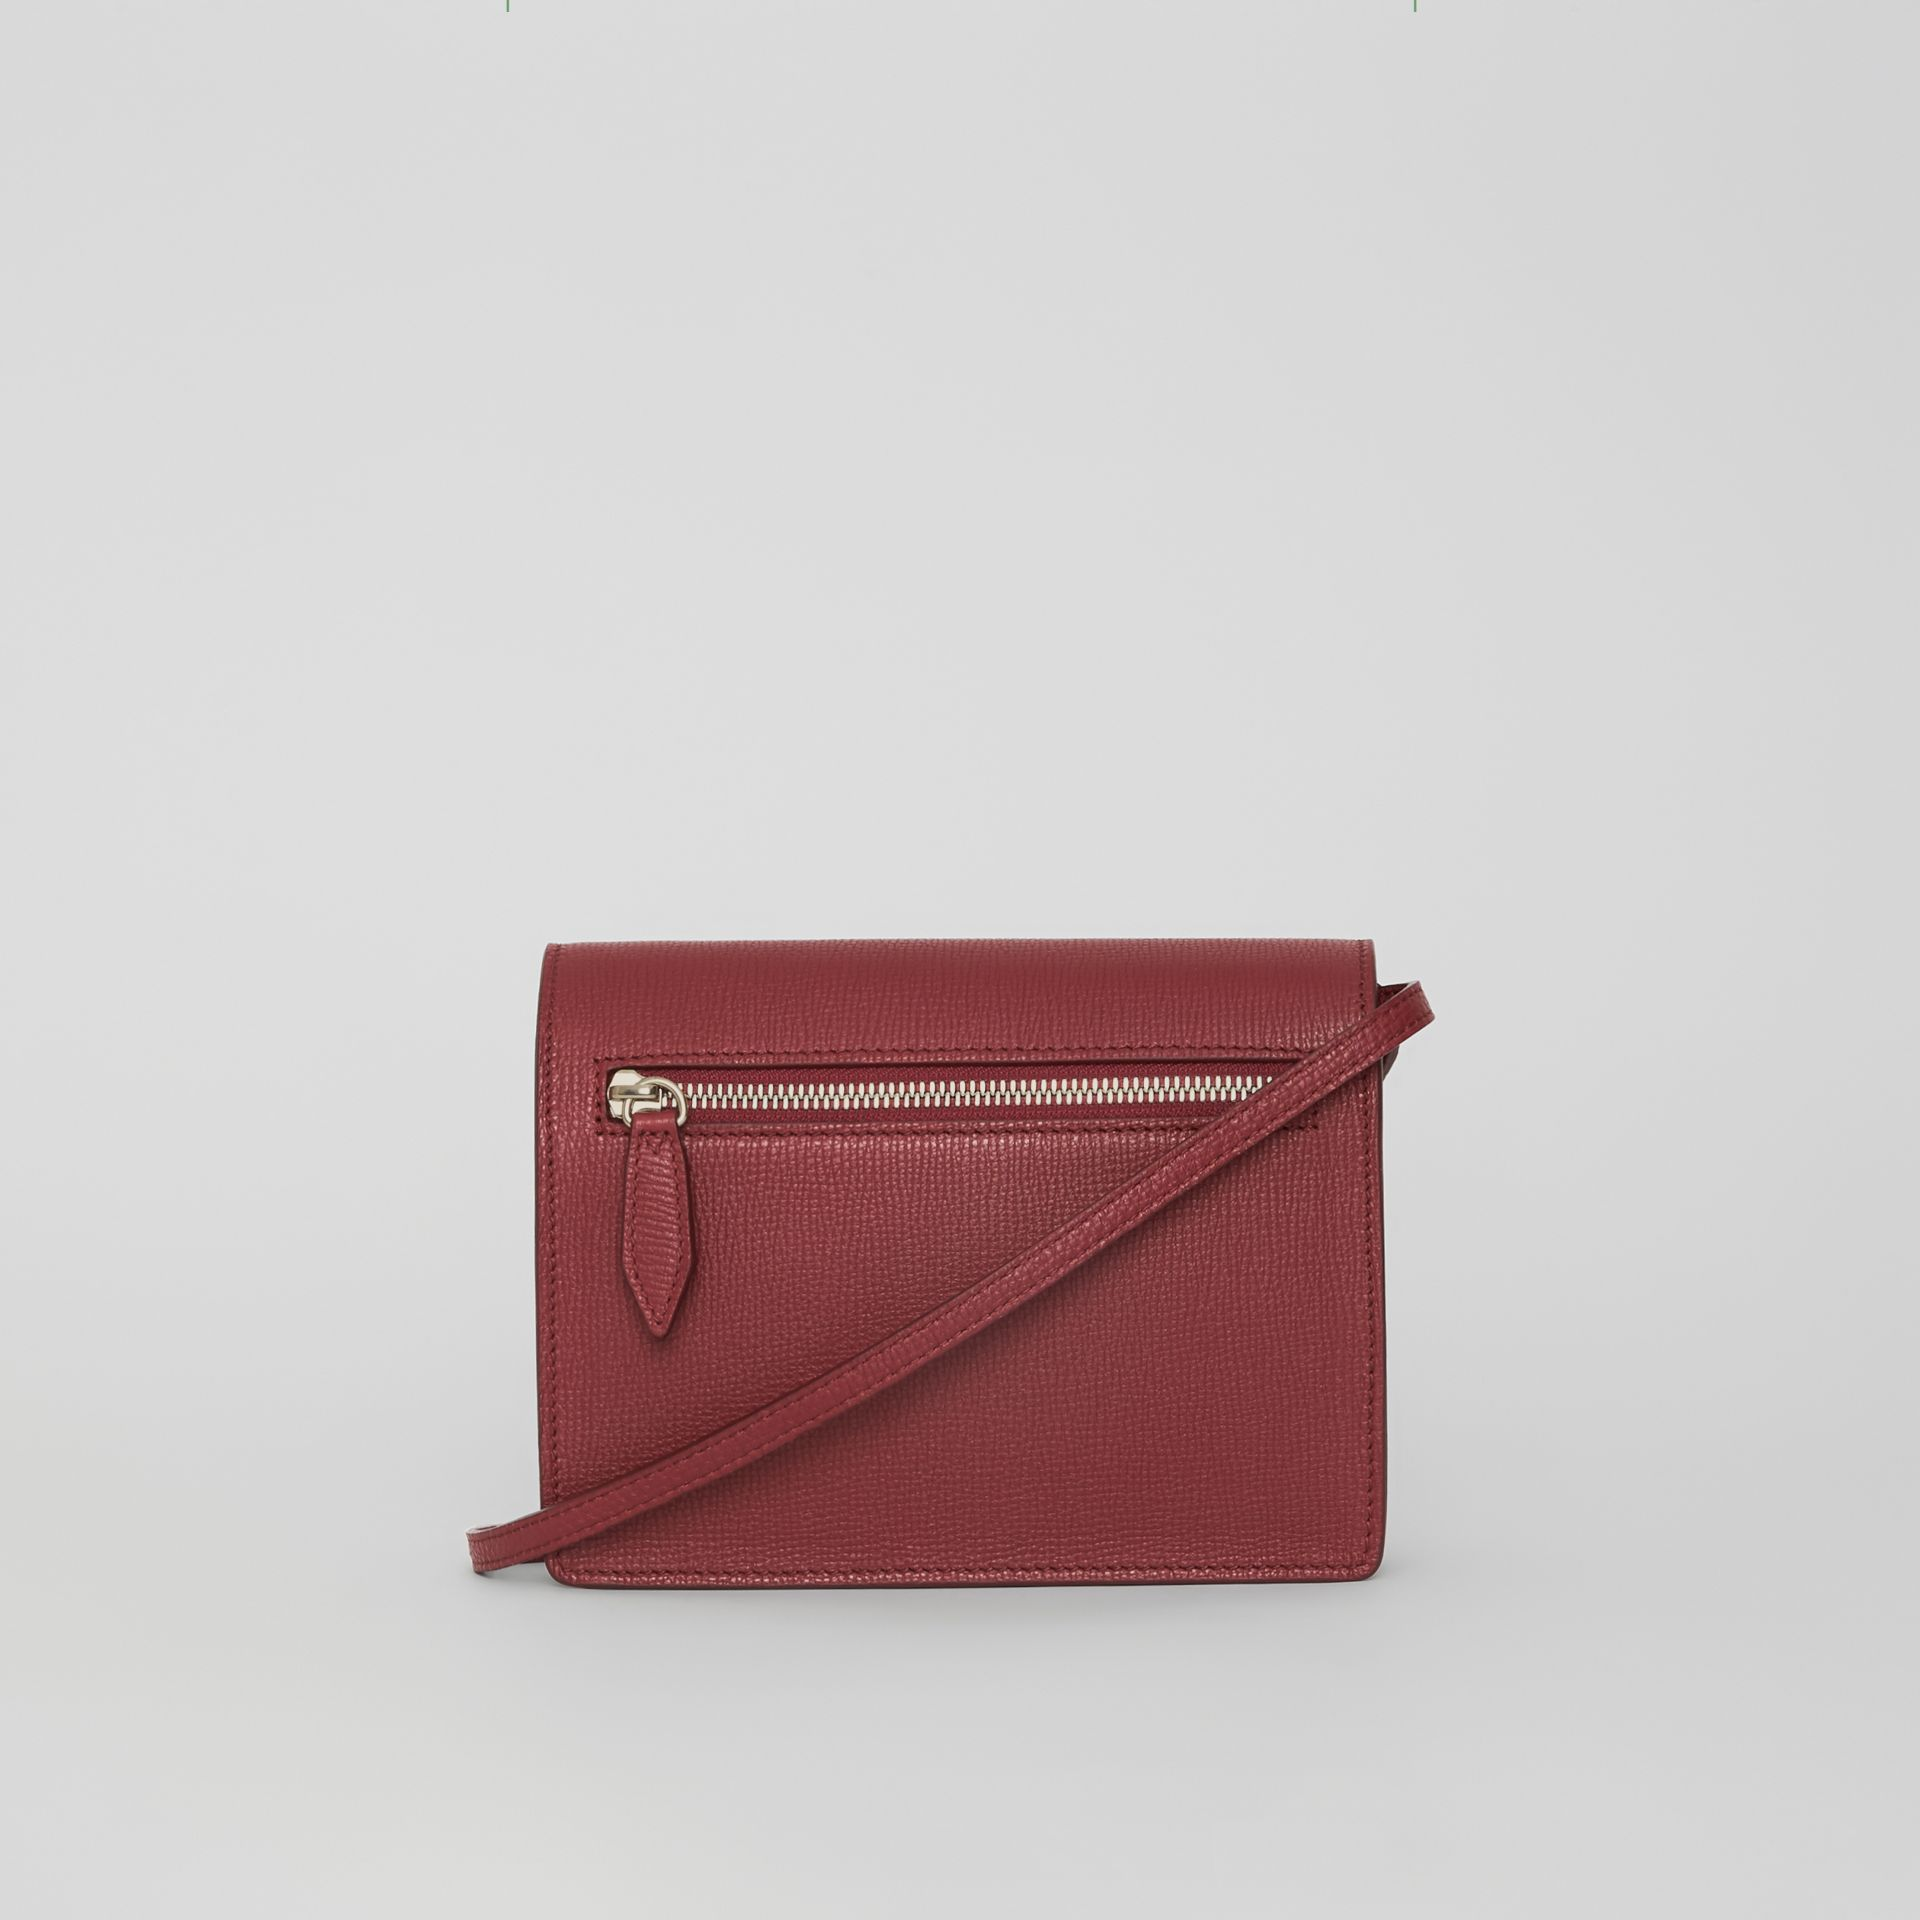 Mini Leather and Vintage Check Crossbody Bag in Crimson - Women | Burberry United Kingdom - gallery image 6